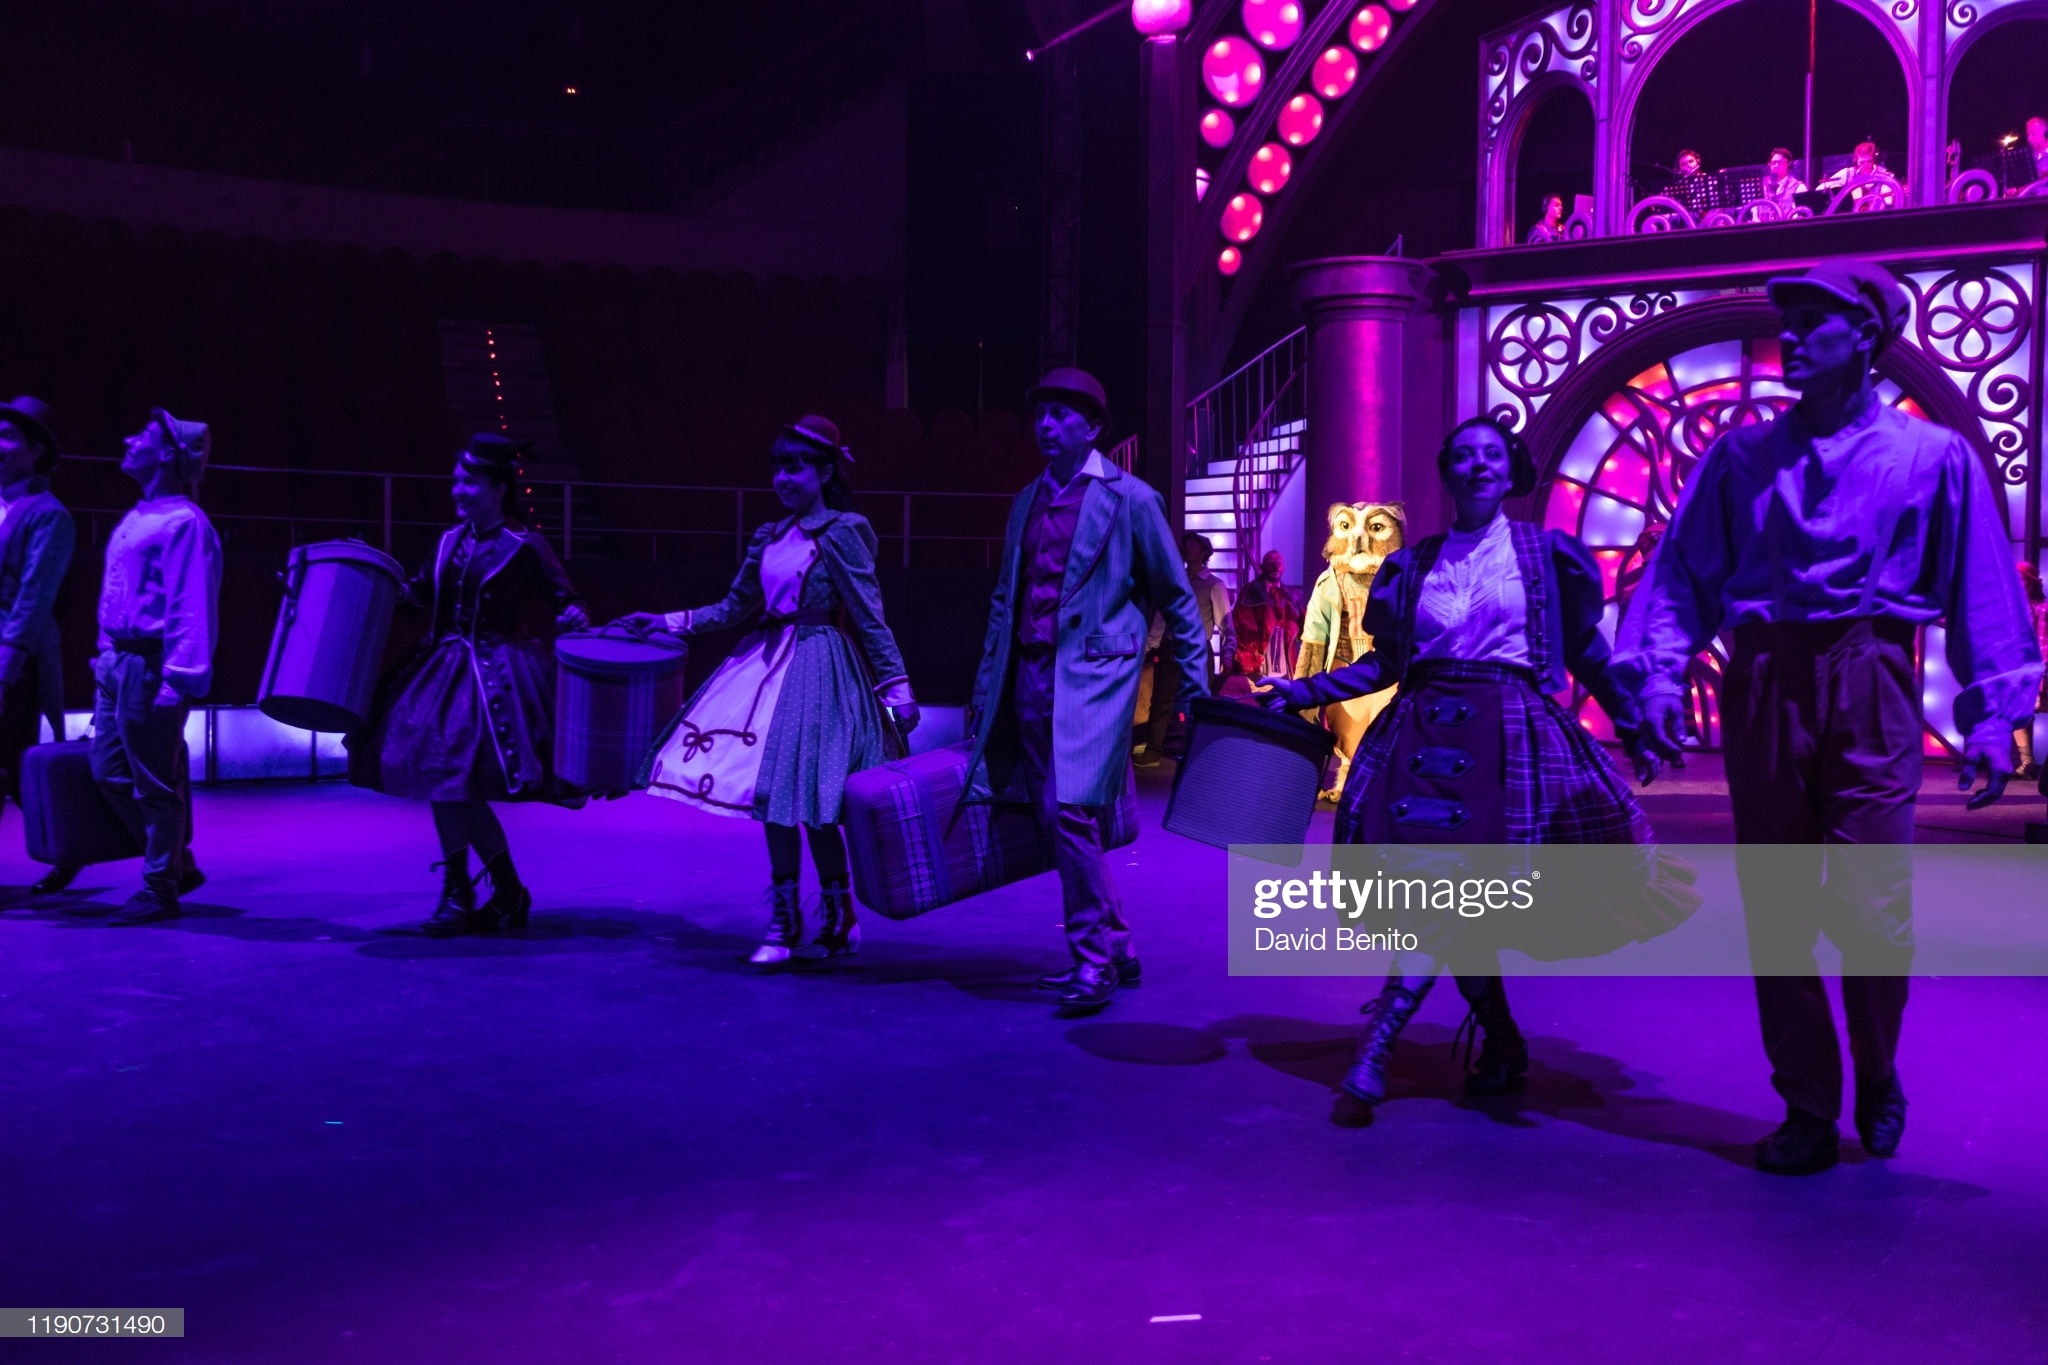 gettyimages-1190731490-2048x2048